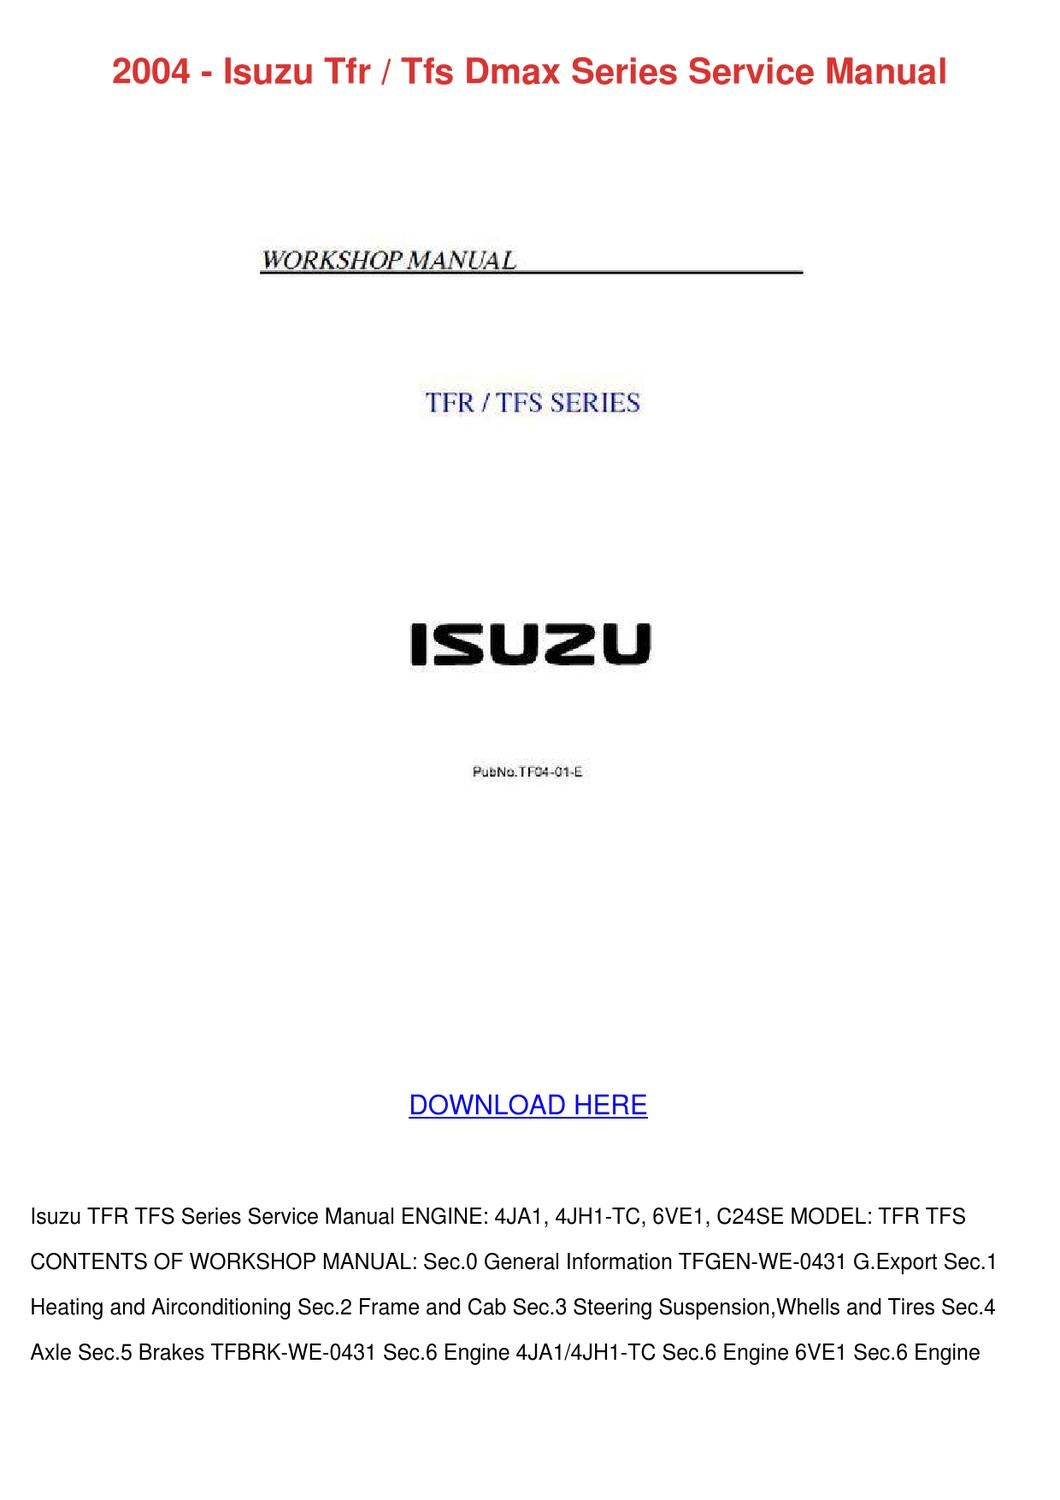 2004 isuzu tfr tfs dmax series service manual by